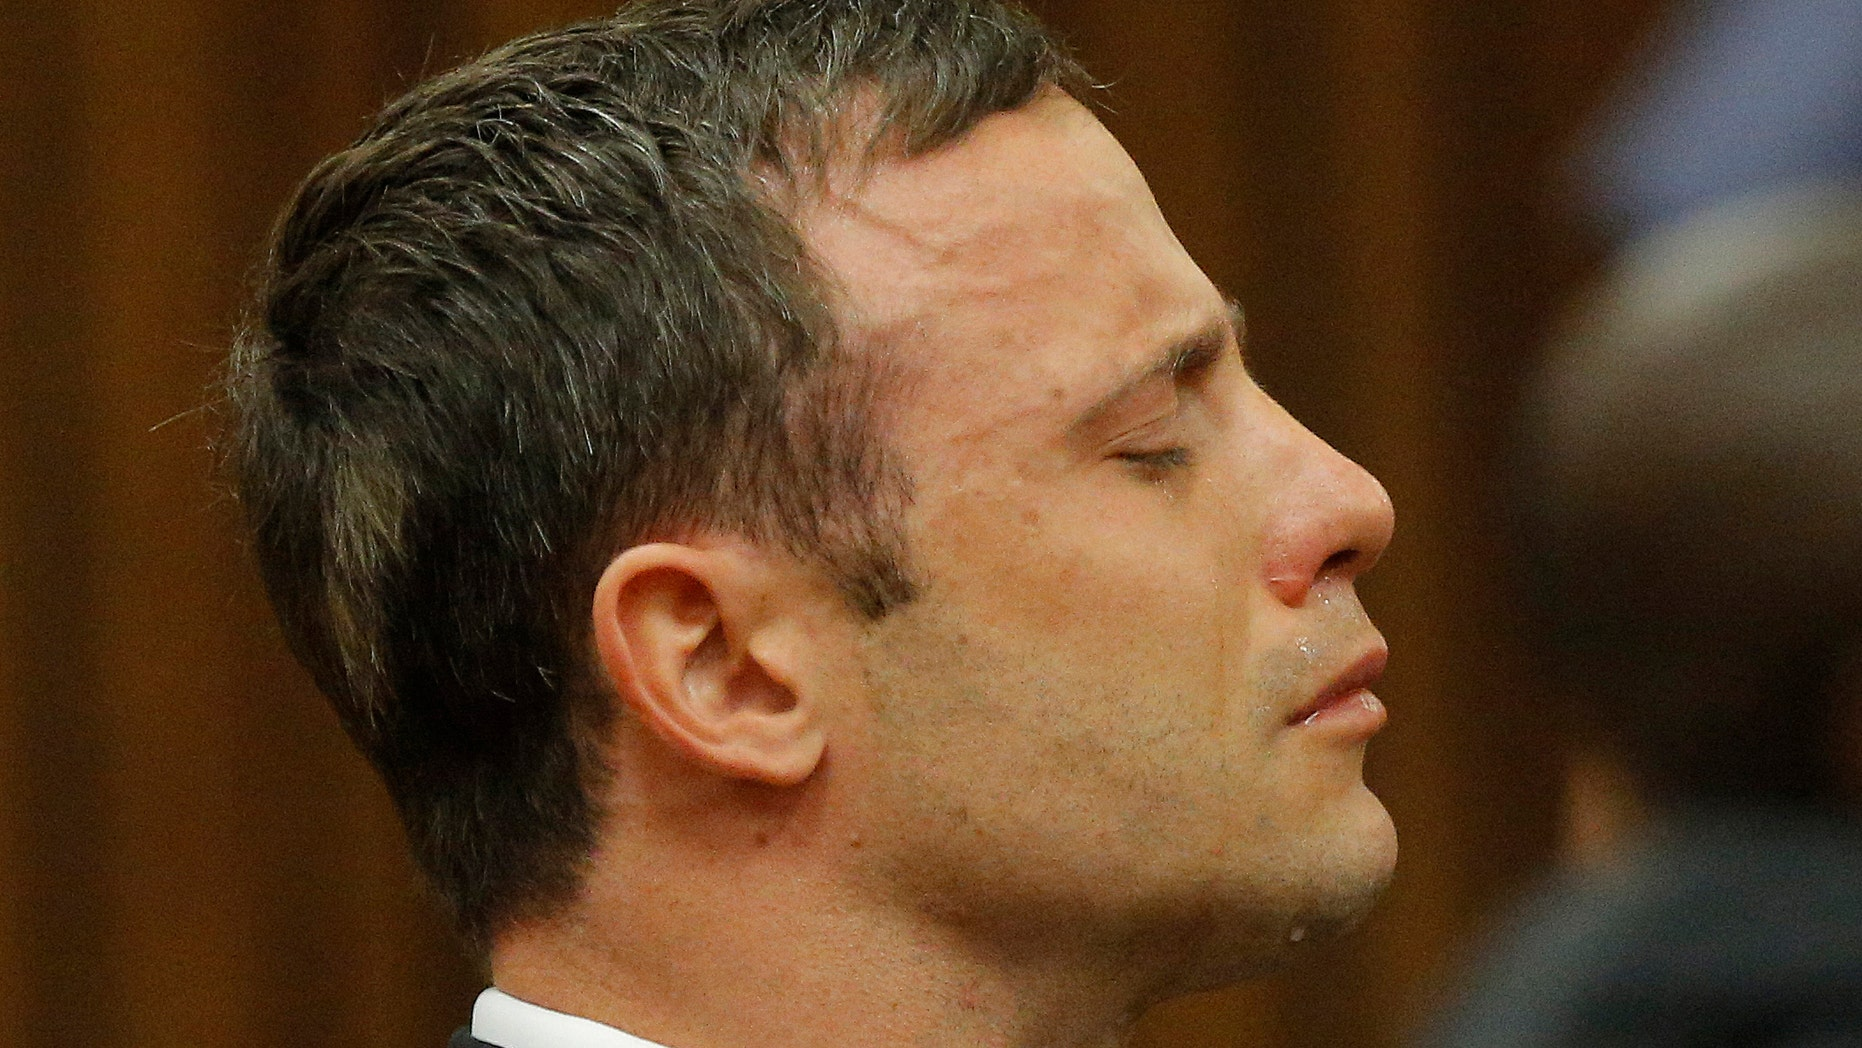 Oscar Pistorius reacts in the dock in Pretoria, South Africa, Thursday Sept. 11, 2014 as Judge Thokozile Masipa reads notes as she delivers her verdict in Pistorius' murder trial. The South African judge in Oscar Pistoriusâ murder trial said Thursday that prosecutors have not proved beyond a reasonable doubt that the double-amputee Olympic athlete is guilty of premeditated murder. (AP Photo/Kim Ludbrook, Pool)